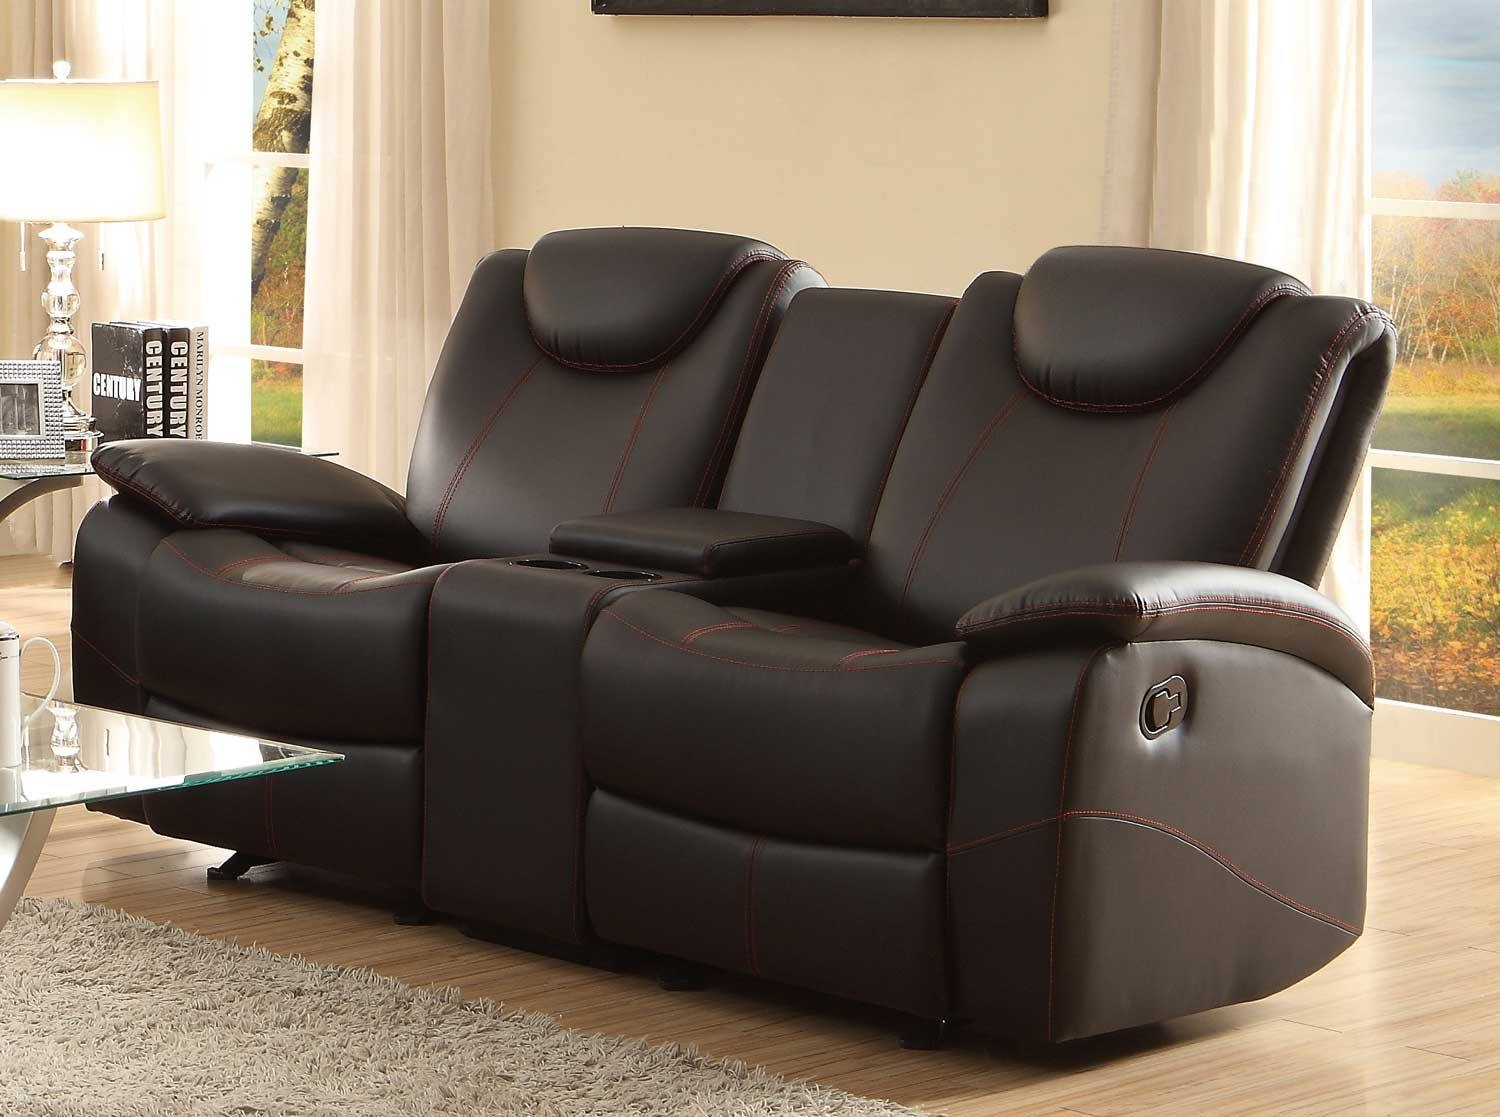 Epic Reclining Loveseat With Center Console 29 For Your Sofas And With Sofas With Console (View 4 of 15)